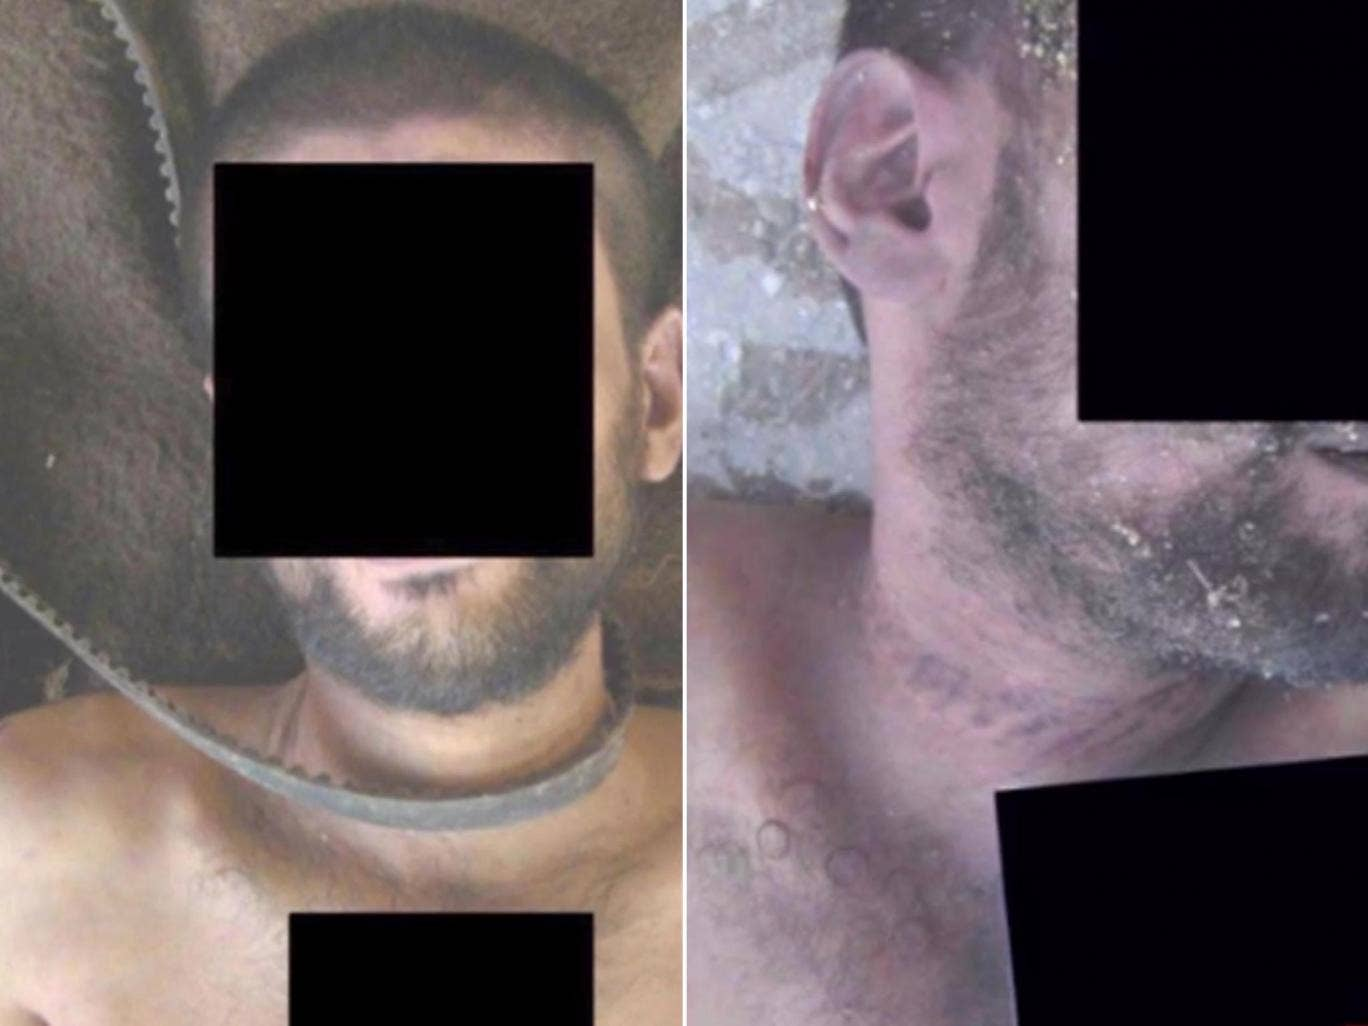 Two horrific images showing men tortured by strangulation in Syria